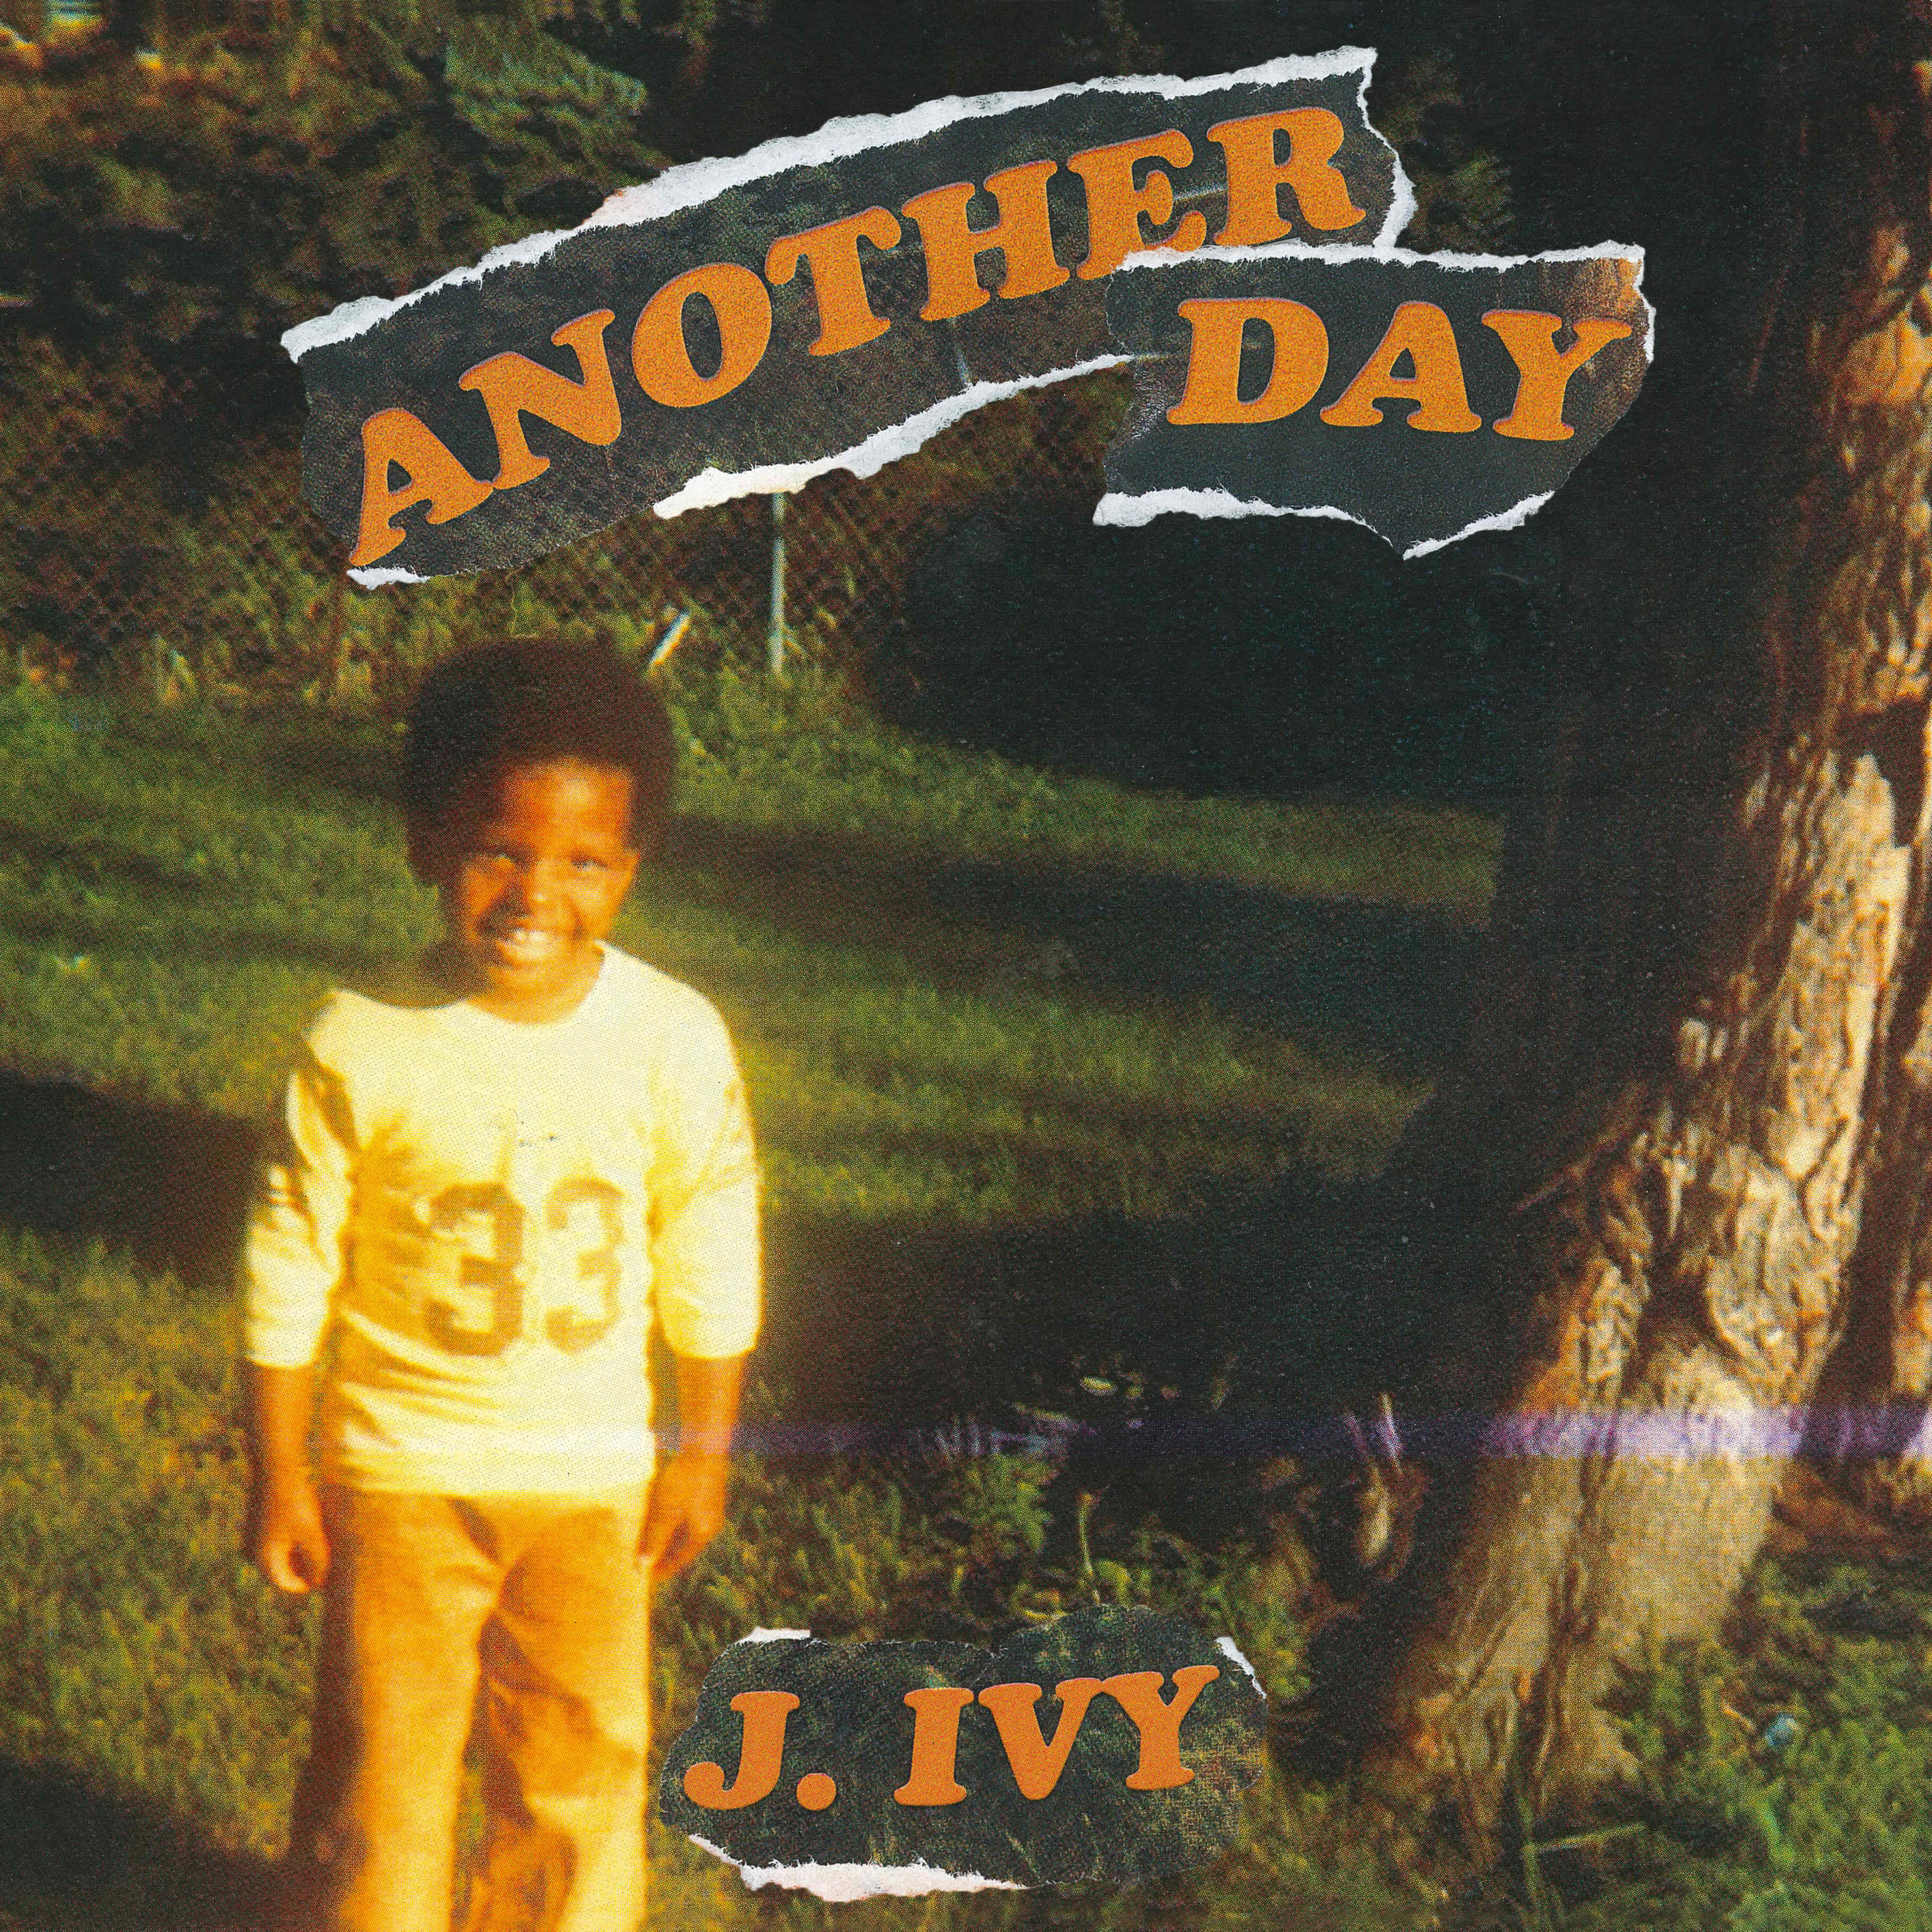 J. Ivy Another Day -final cover.jpg